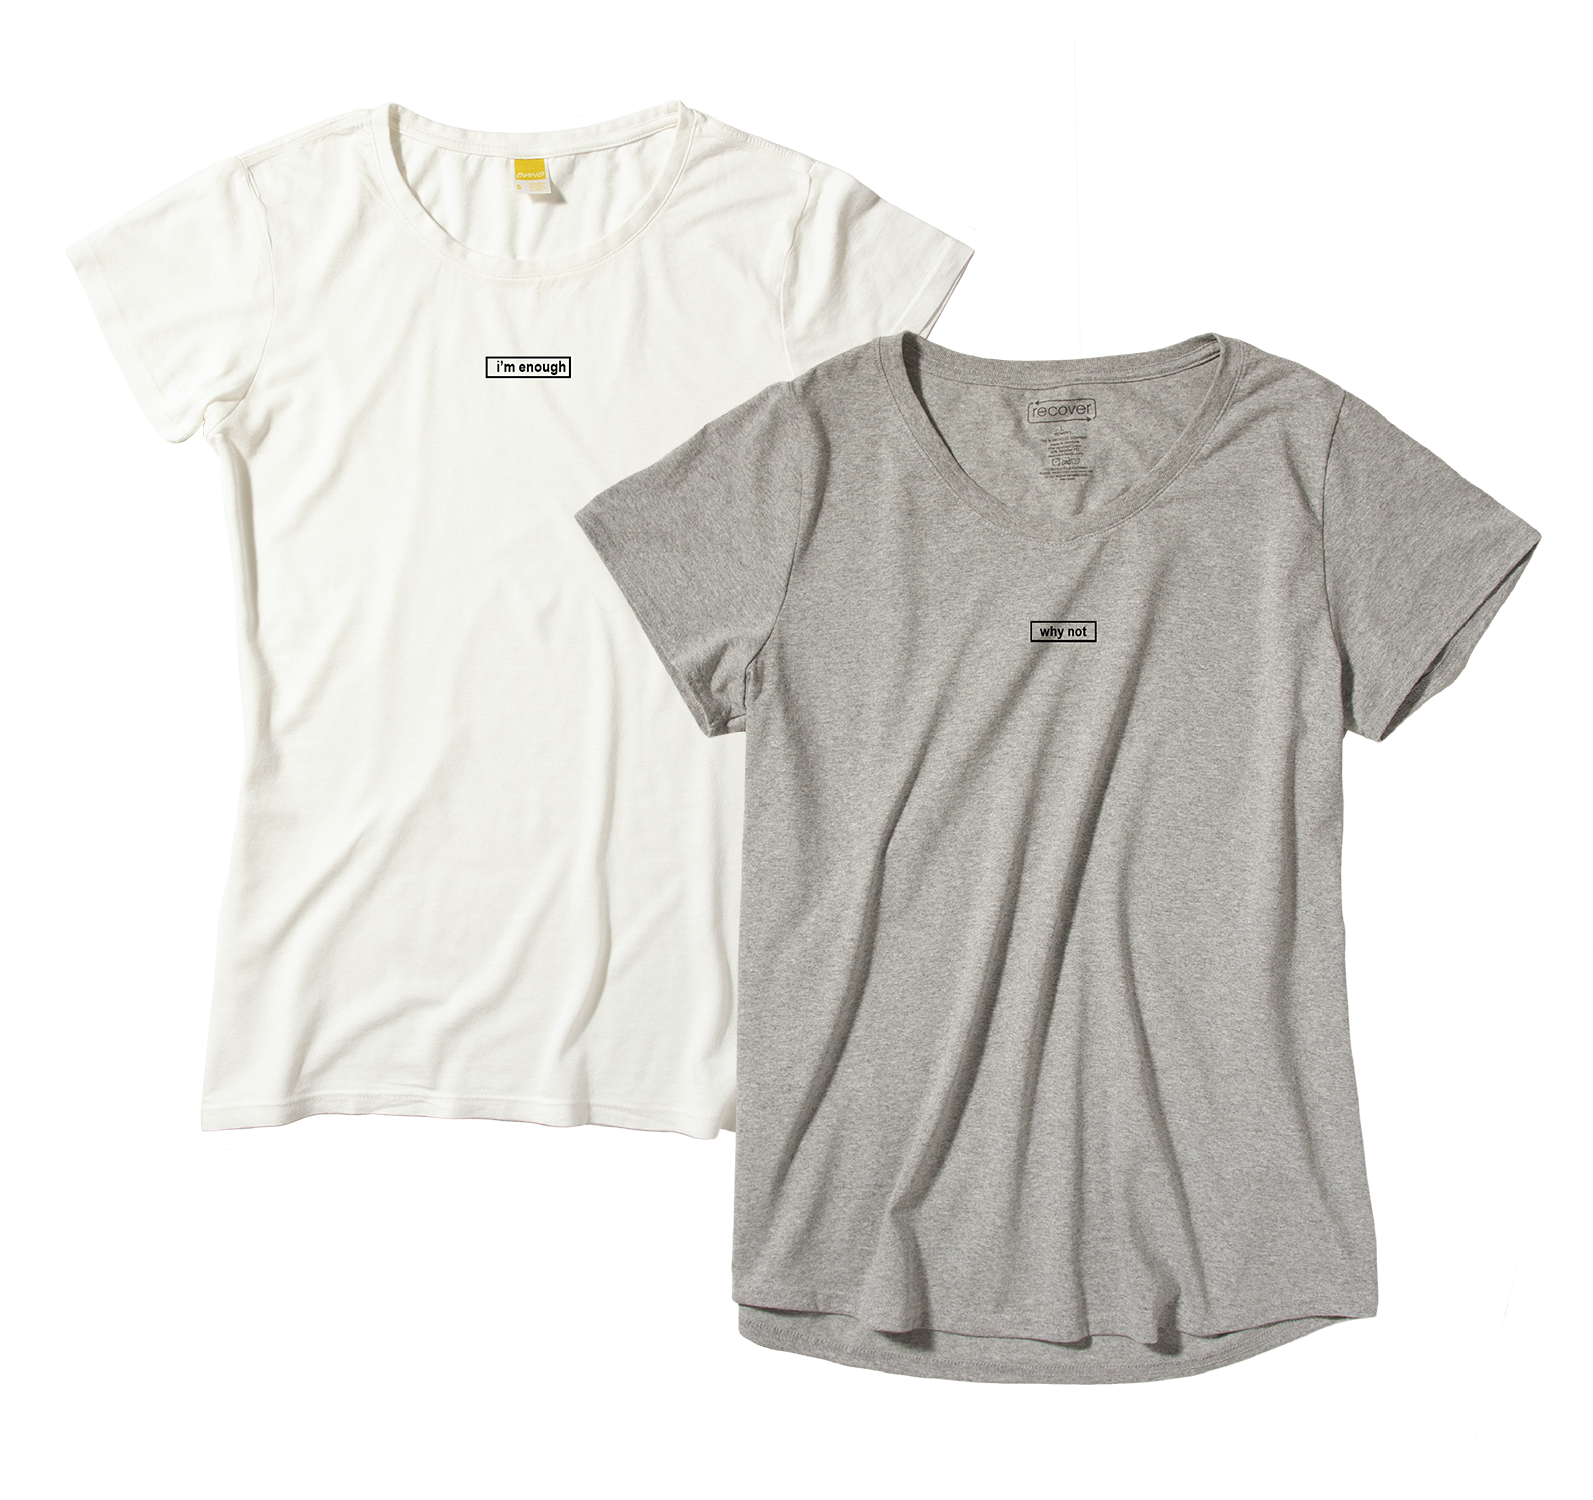 Two different fits to accommodate different body types In both white and grey.